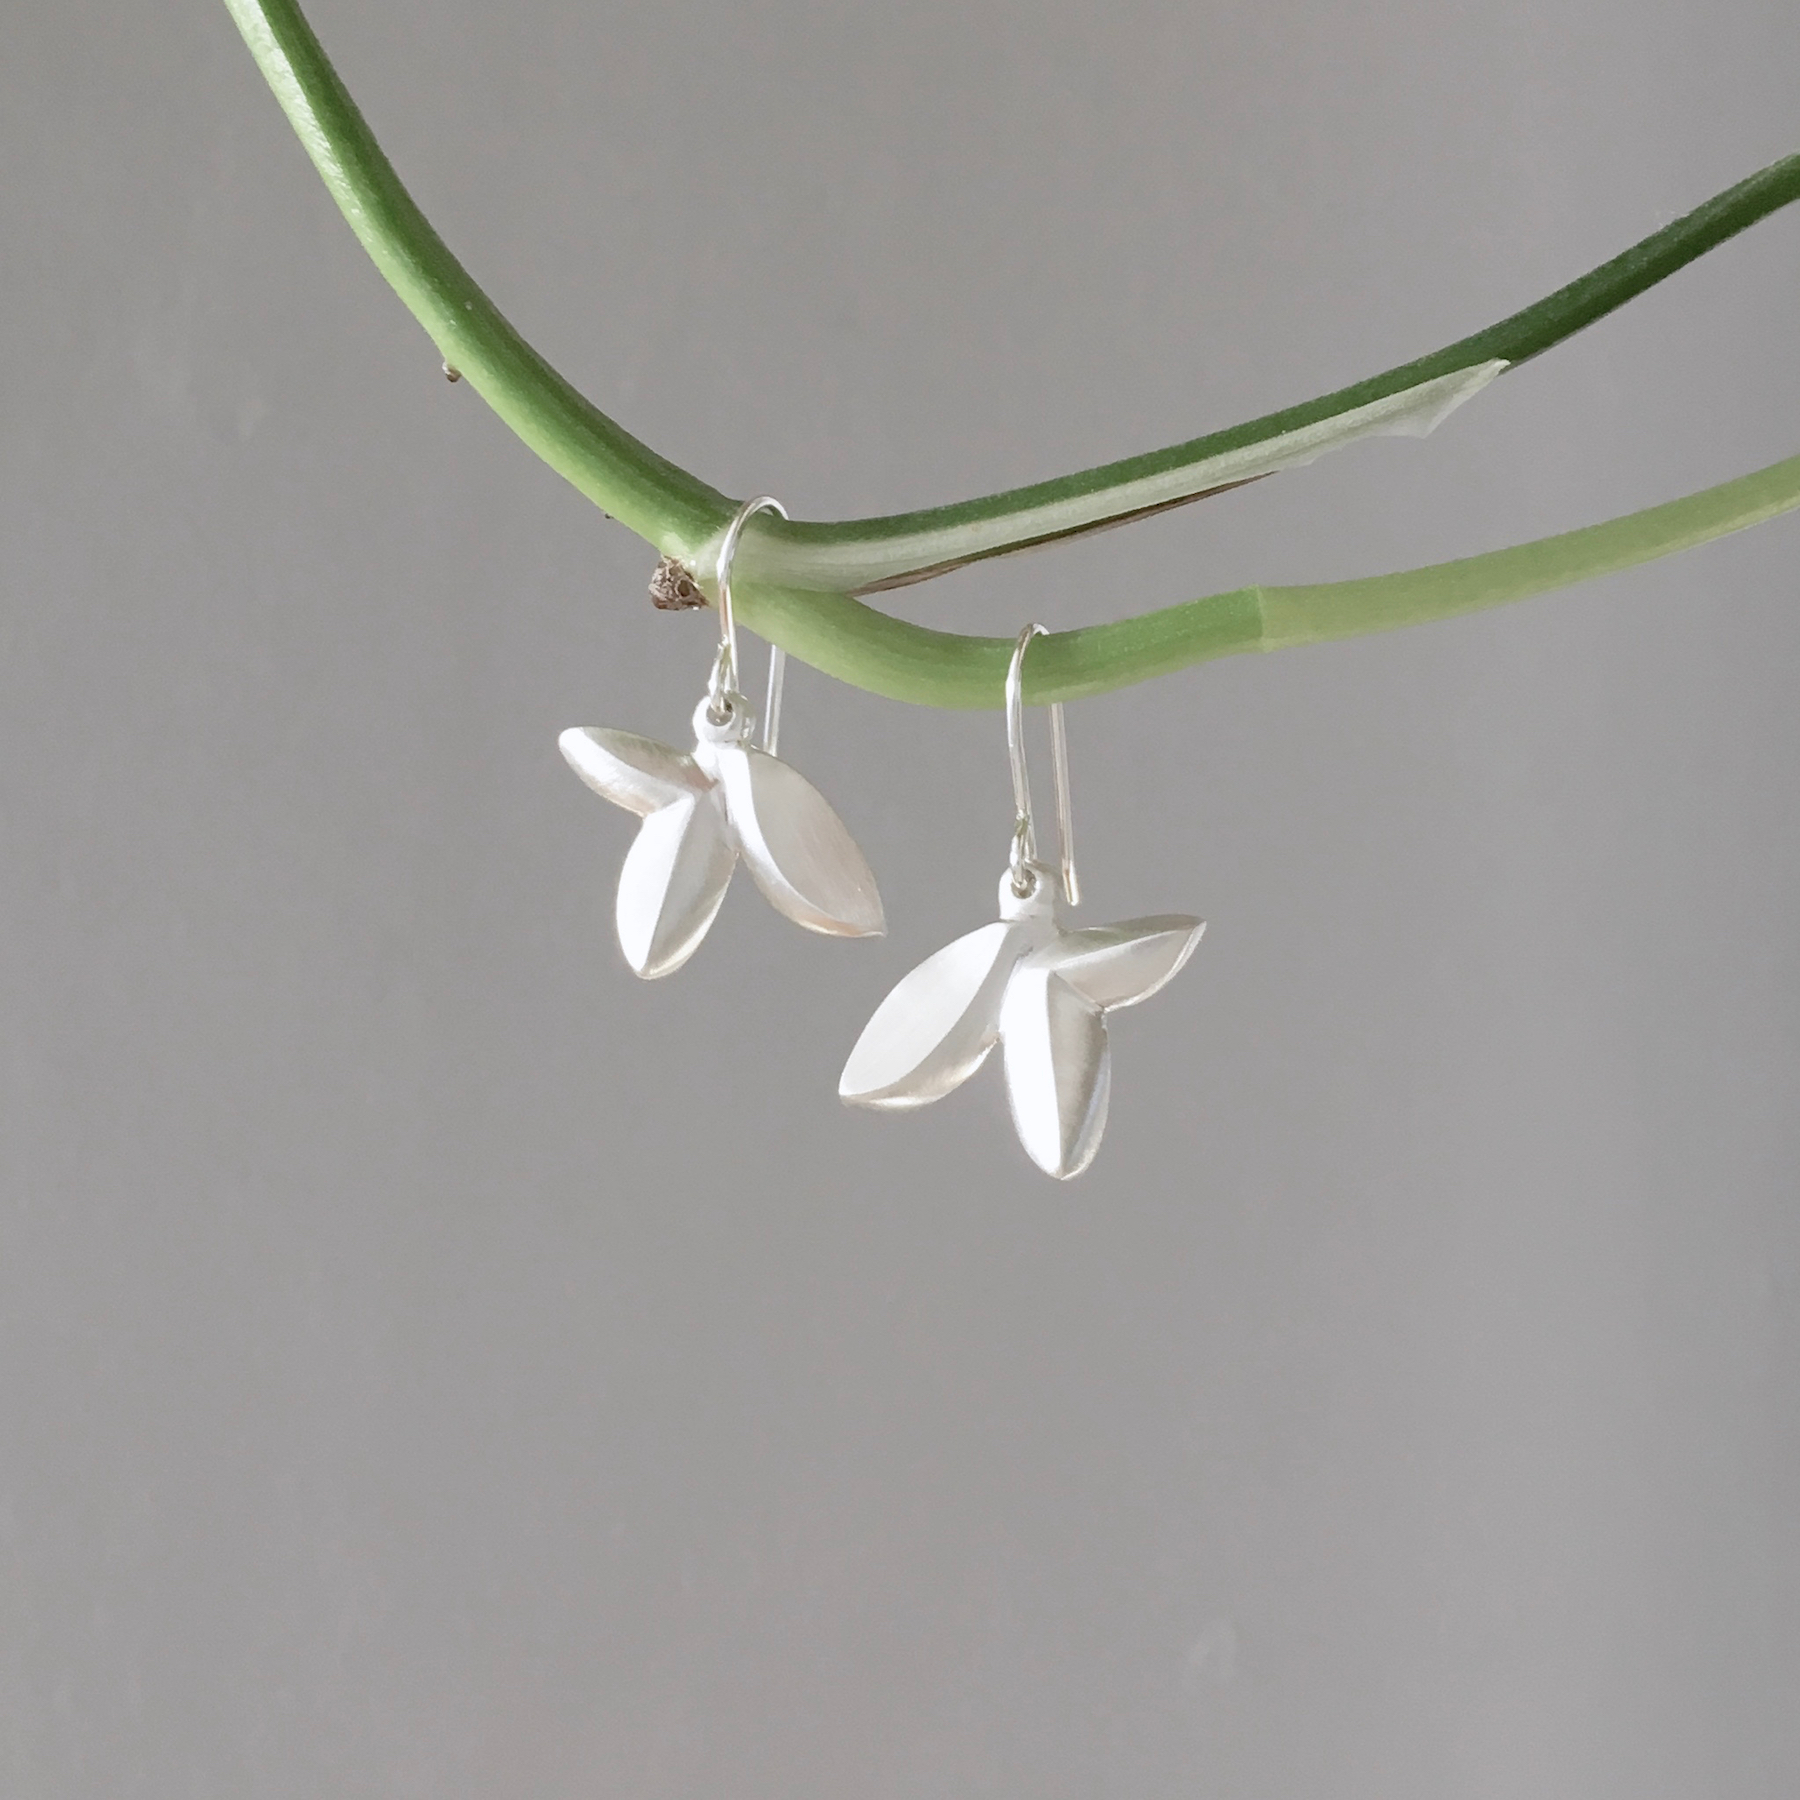 Silver floral drop earrings by K. Claire MacDonald